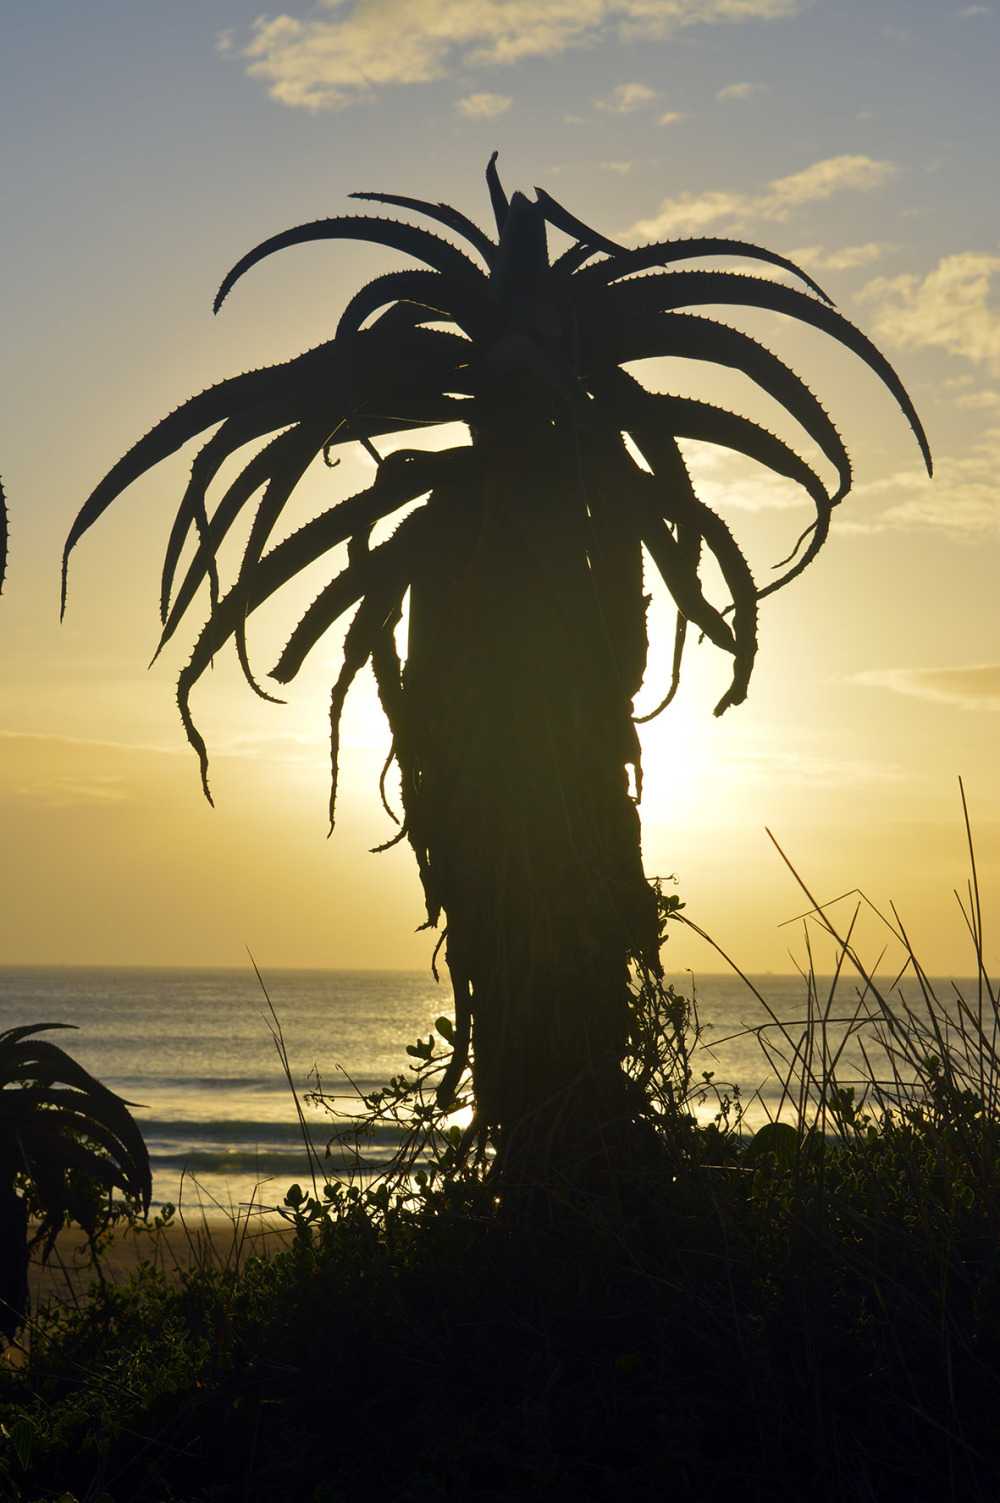 Aloe Silhouette at beach sunrise